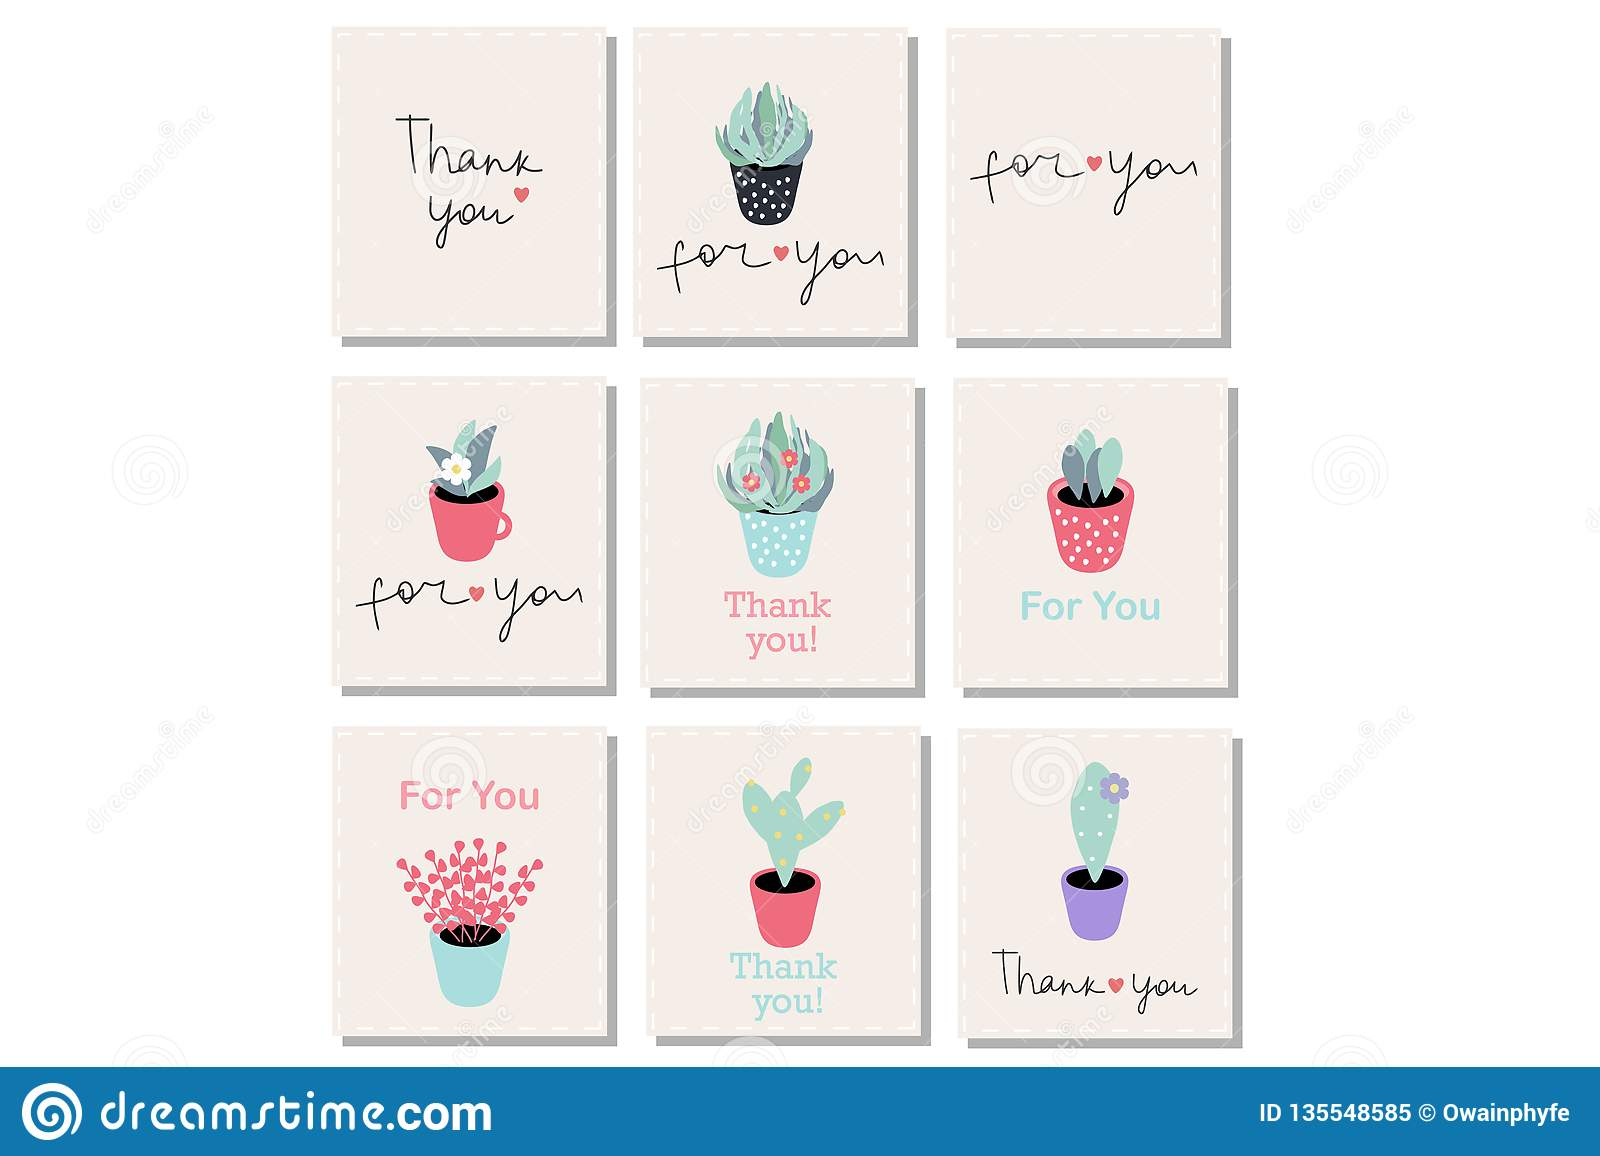 Set of 9 vector gift cards with words ``Thank you`` and ``For you